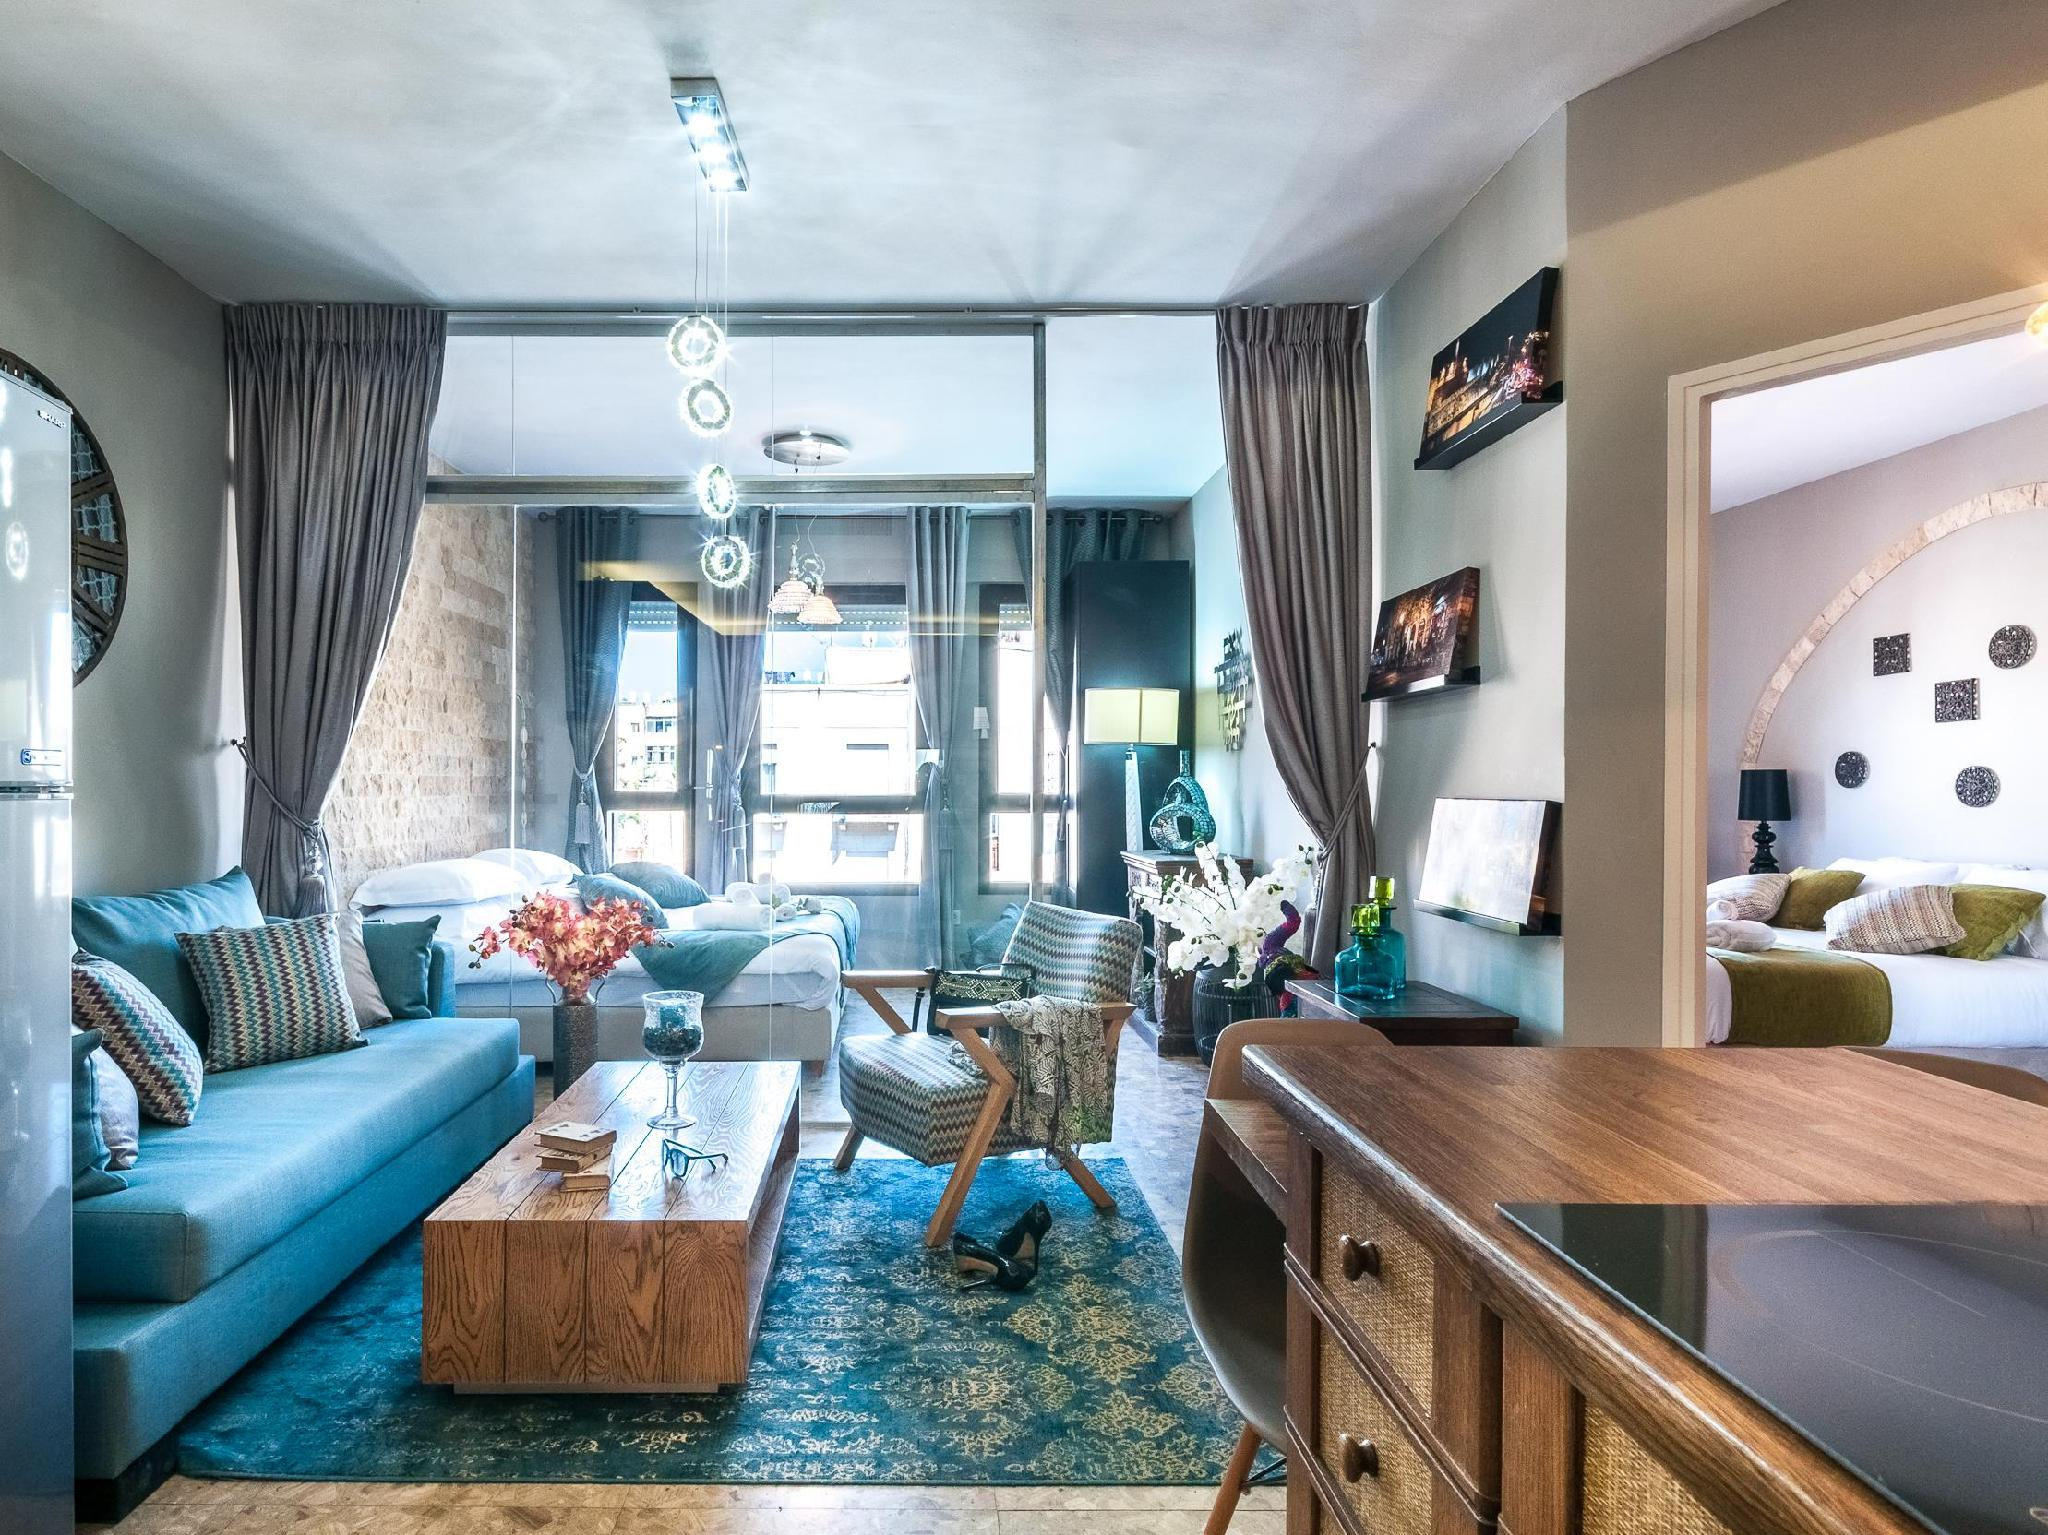 Sweet Inn Apartments - King David 19 - Hotels and Accommodation in Israel, Middle East